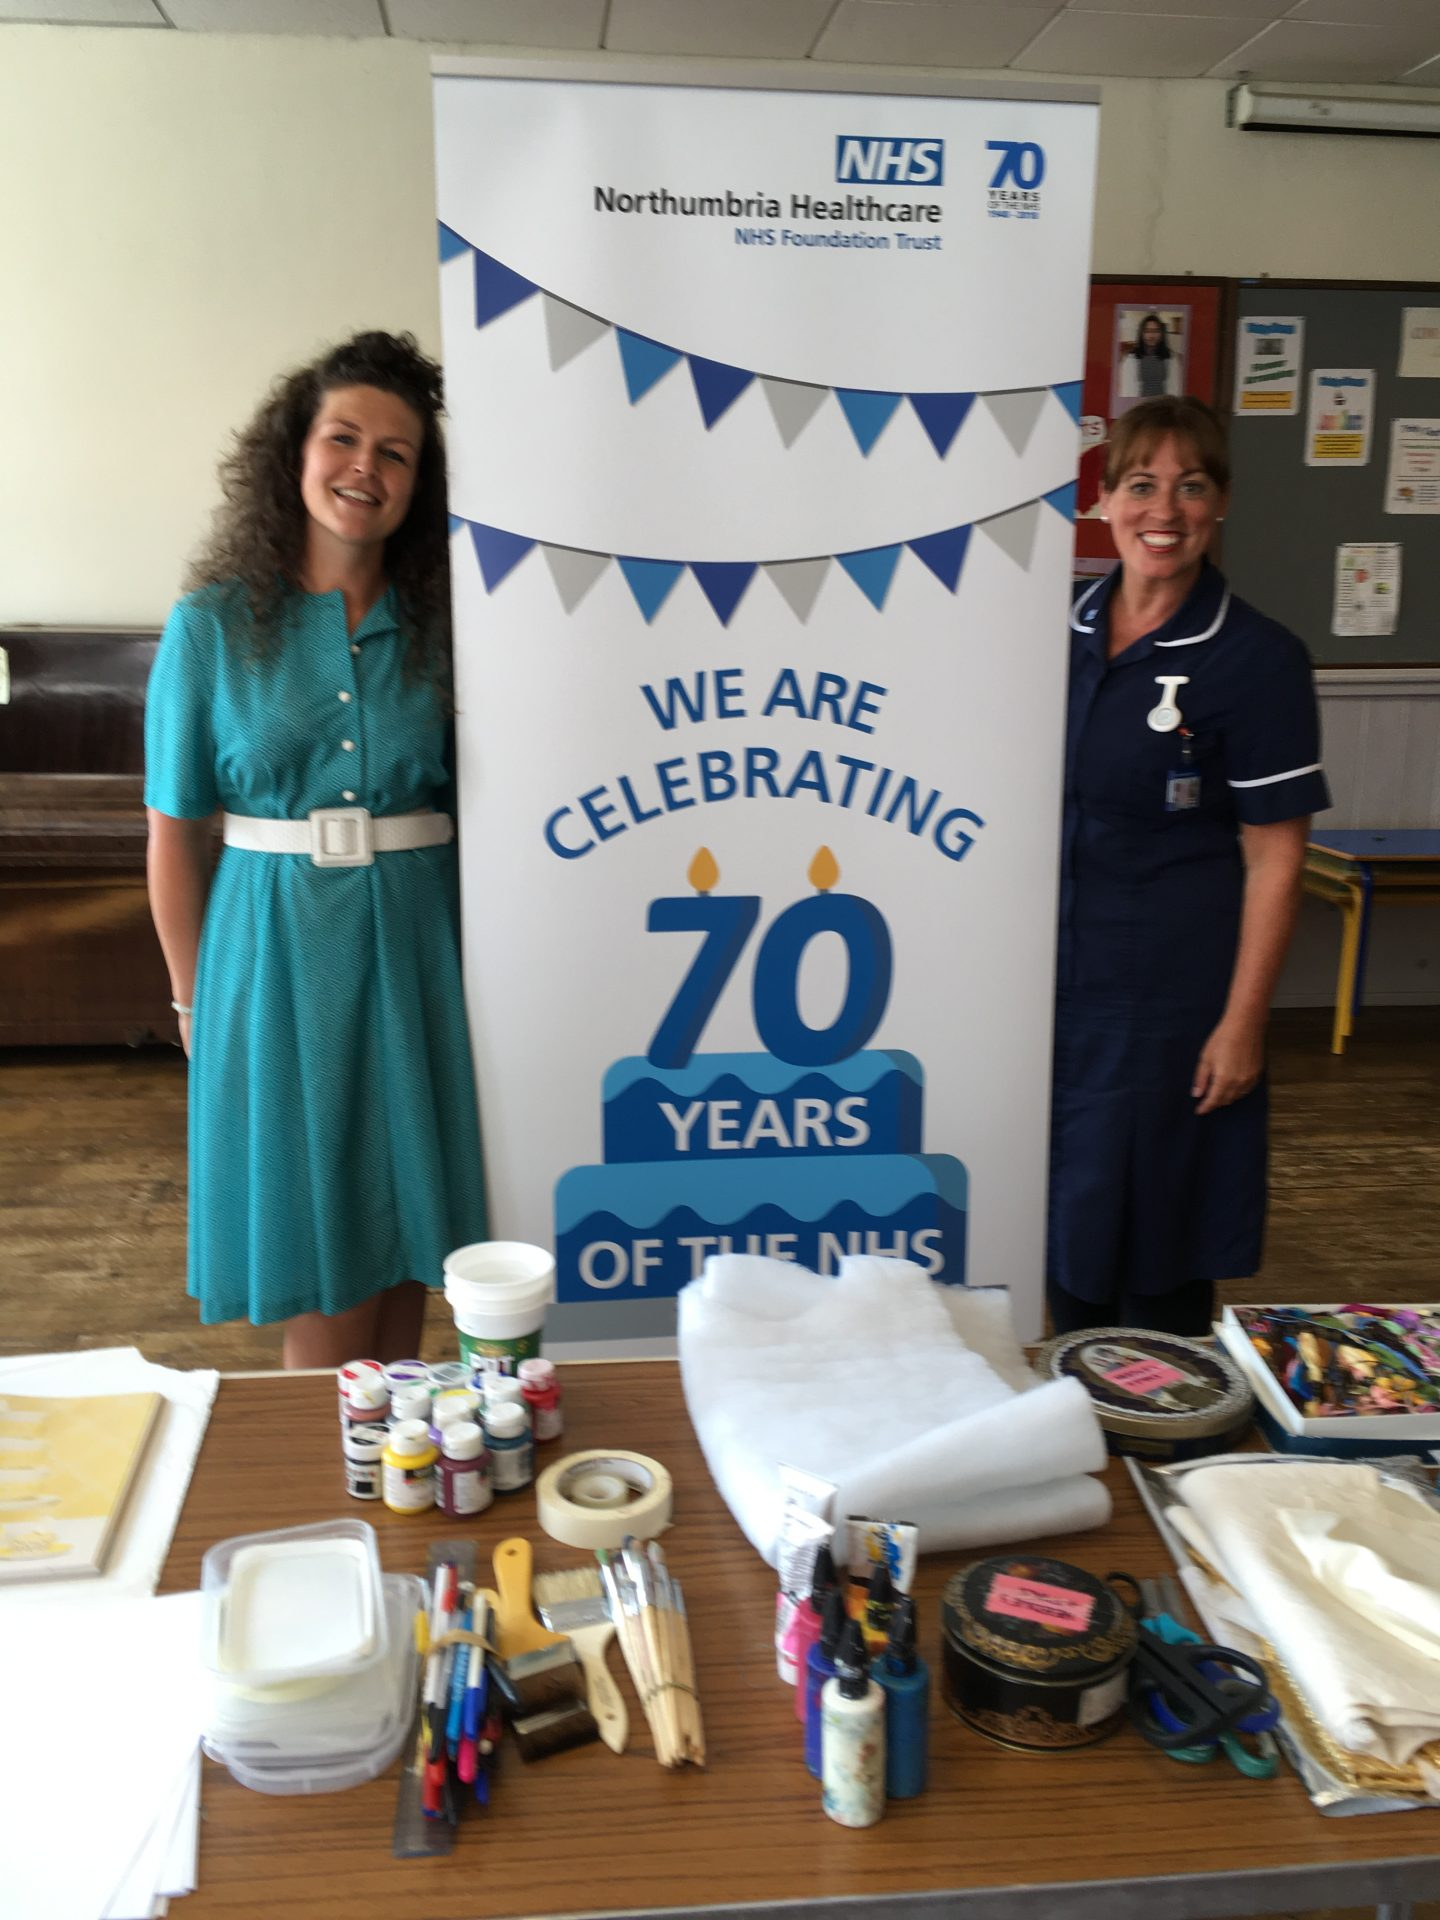 Embroidery workshops to celebrate 70 years of the NHS, Sept 2018